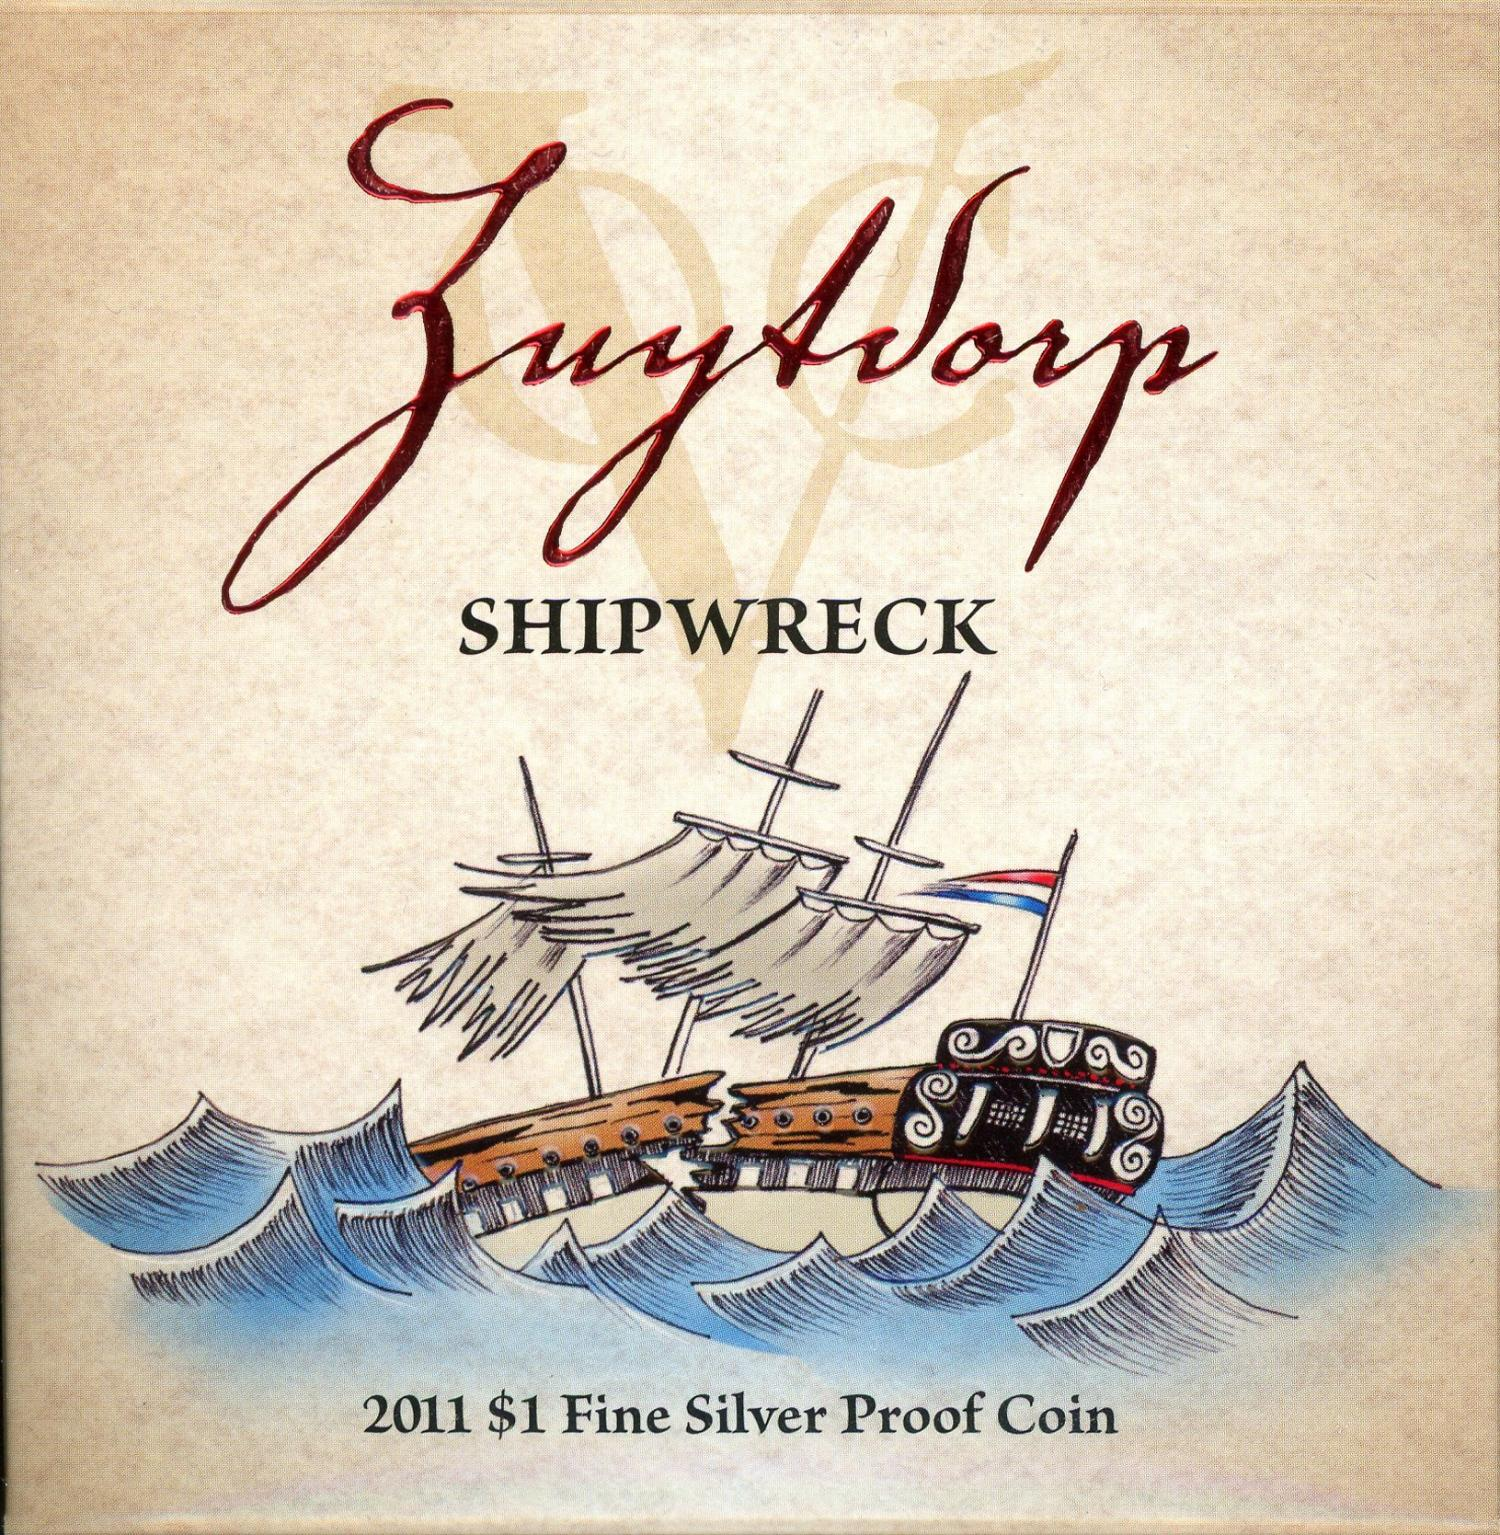 Thumbnail for 2011 Zuytdorp Shipwreck Made To Order $1 Silver Proof